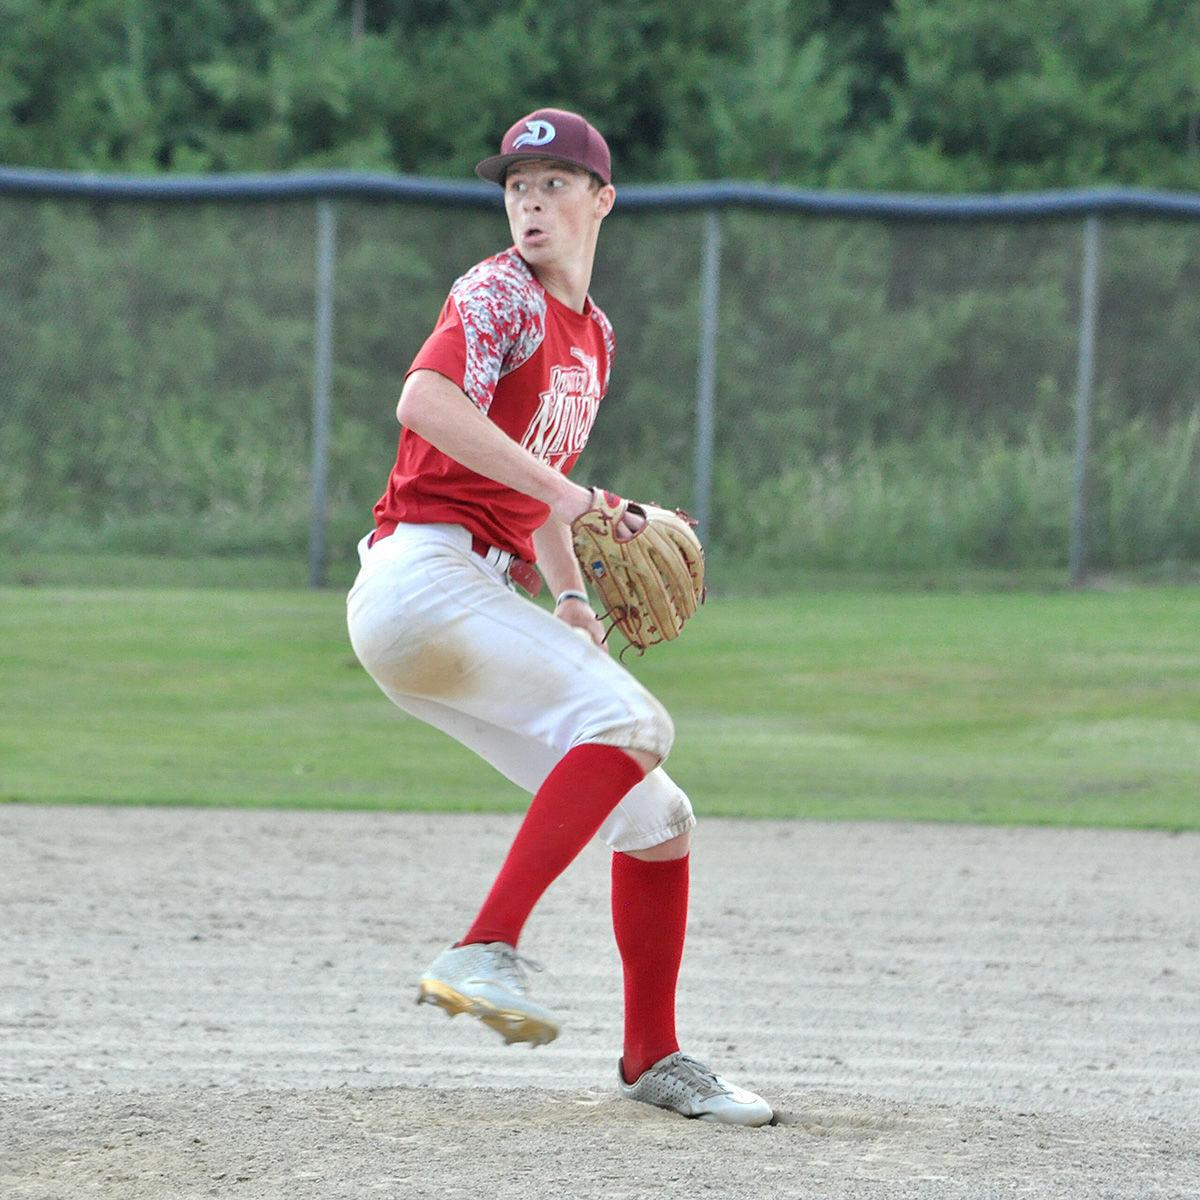 Byers pitching